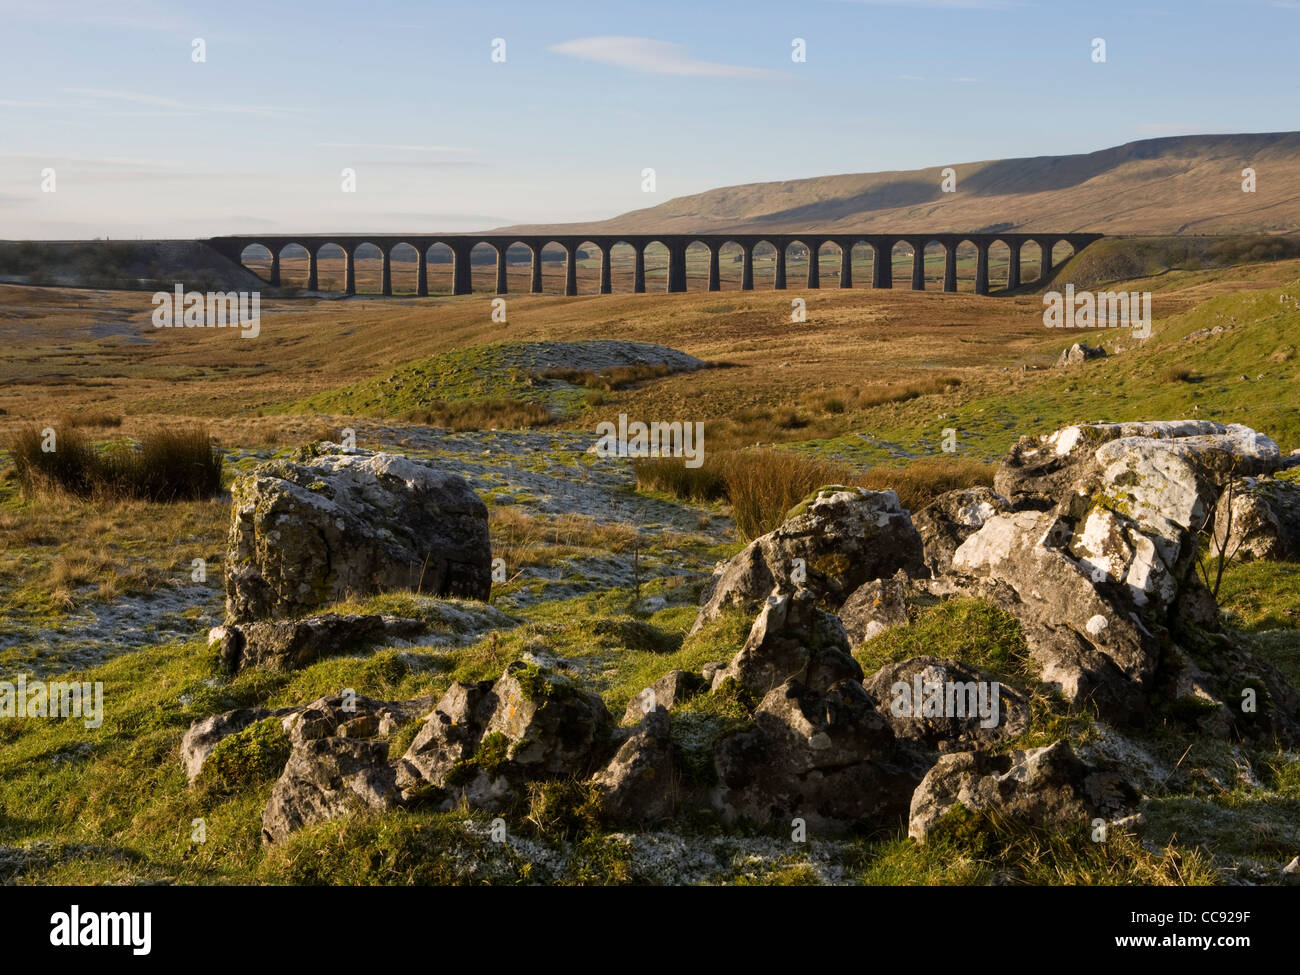 Limestone Pavement at the Ribblehead Viaduct across the River Ribble at Ribblehead, Chapel-le-dale in North Yorkshire, - Stock Image